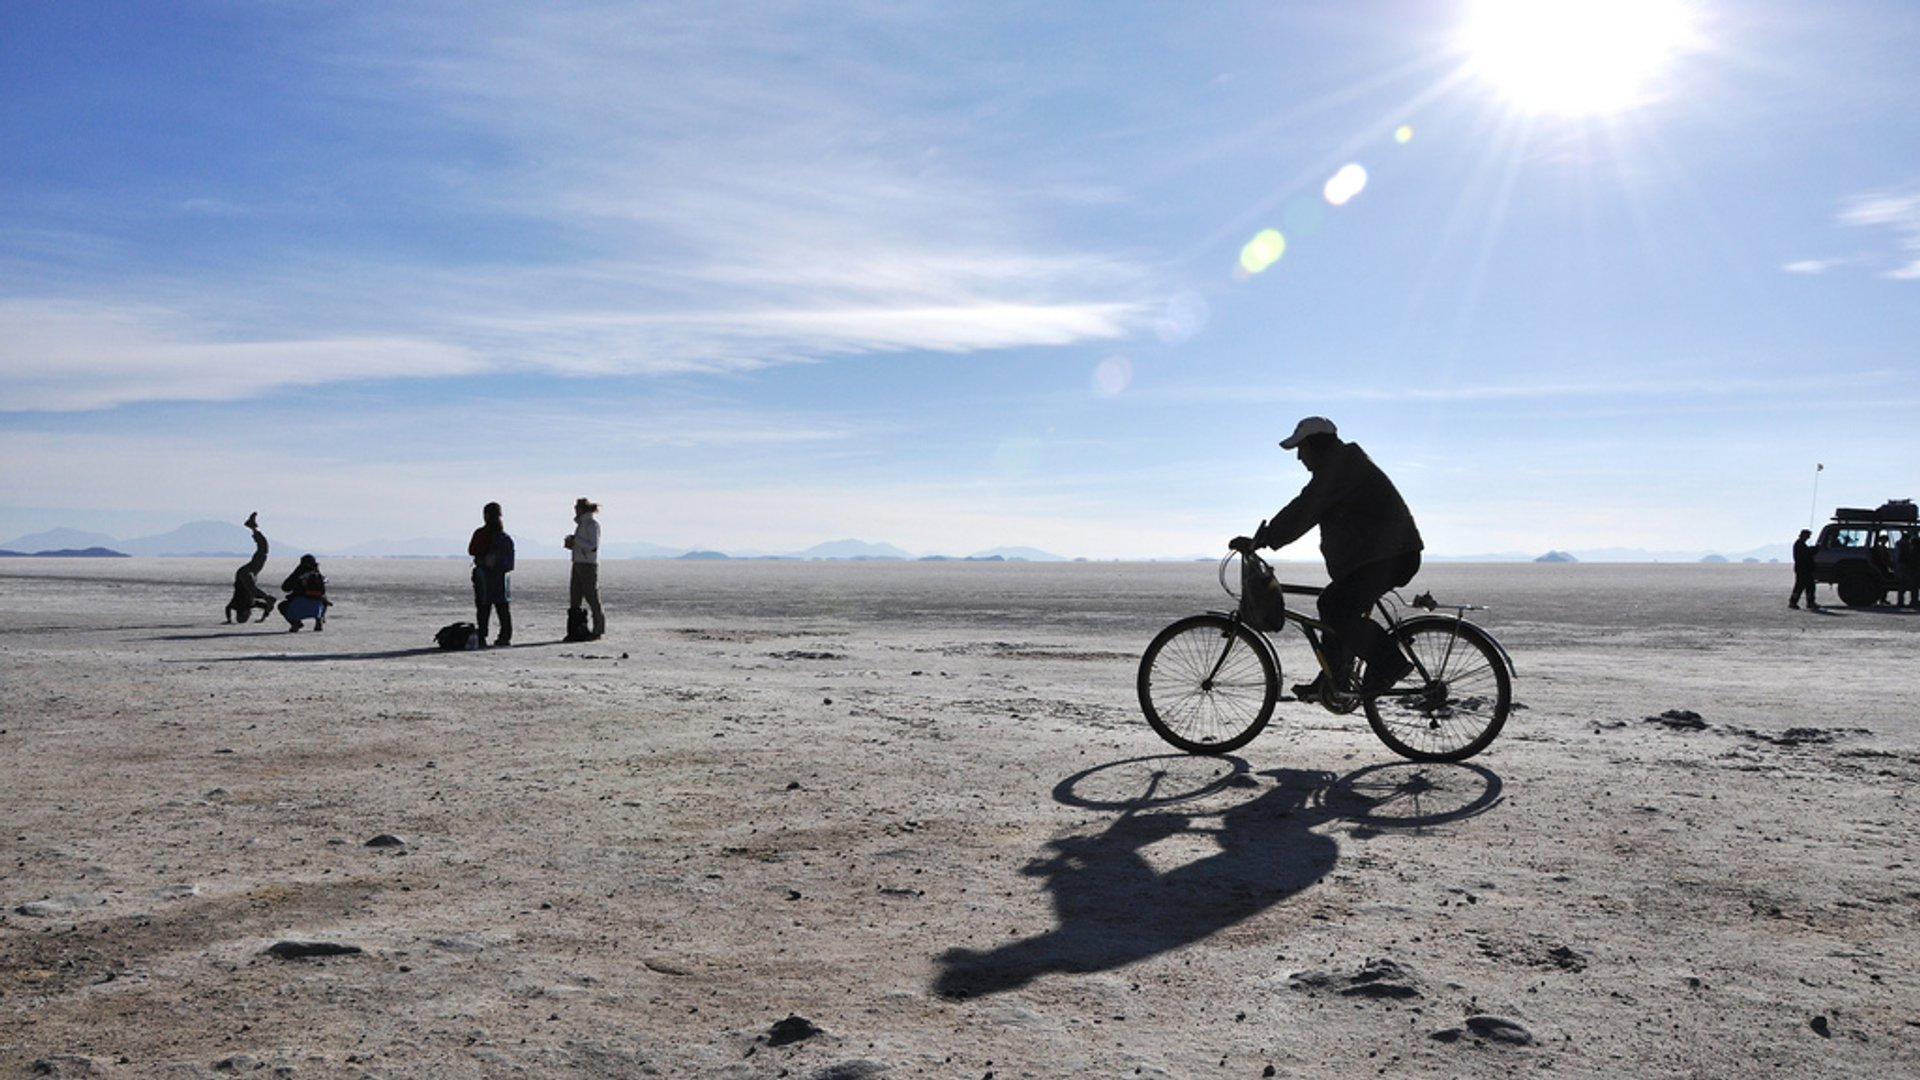 Сycling and Motorbiking in Bolivia 2019 - Best Time